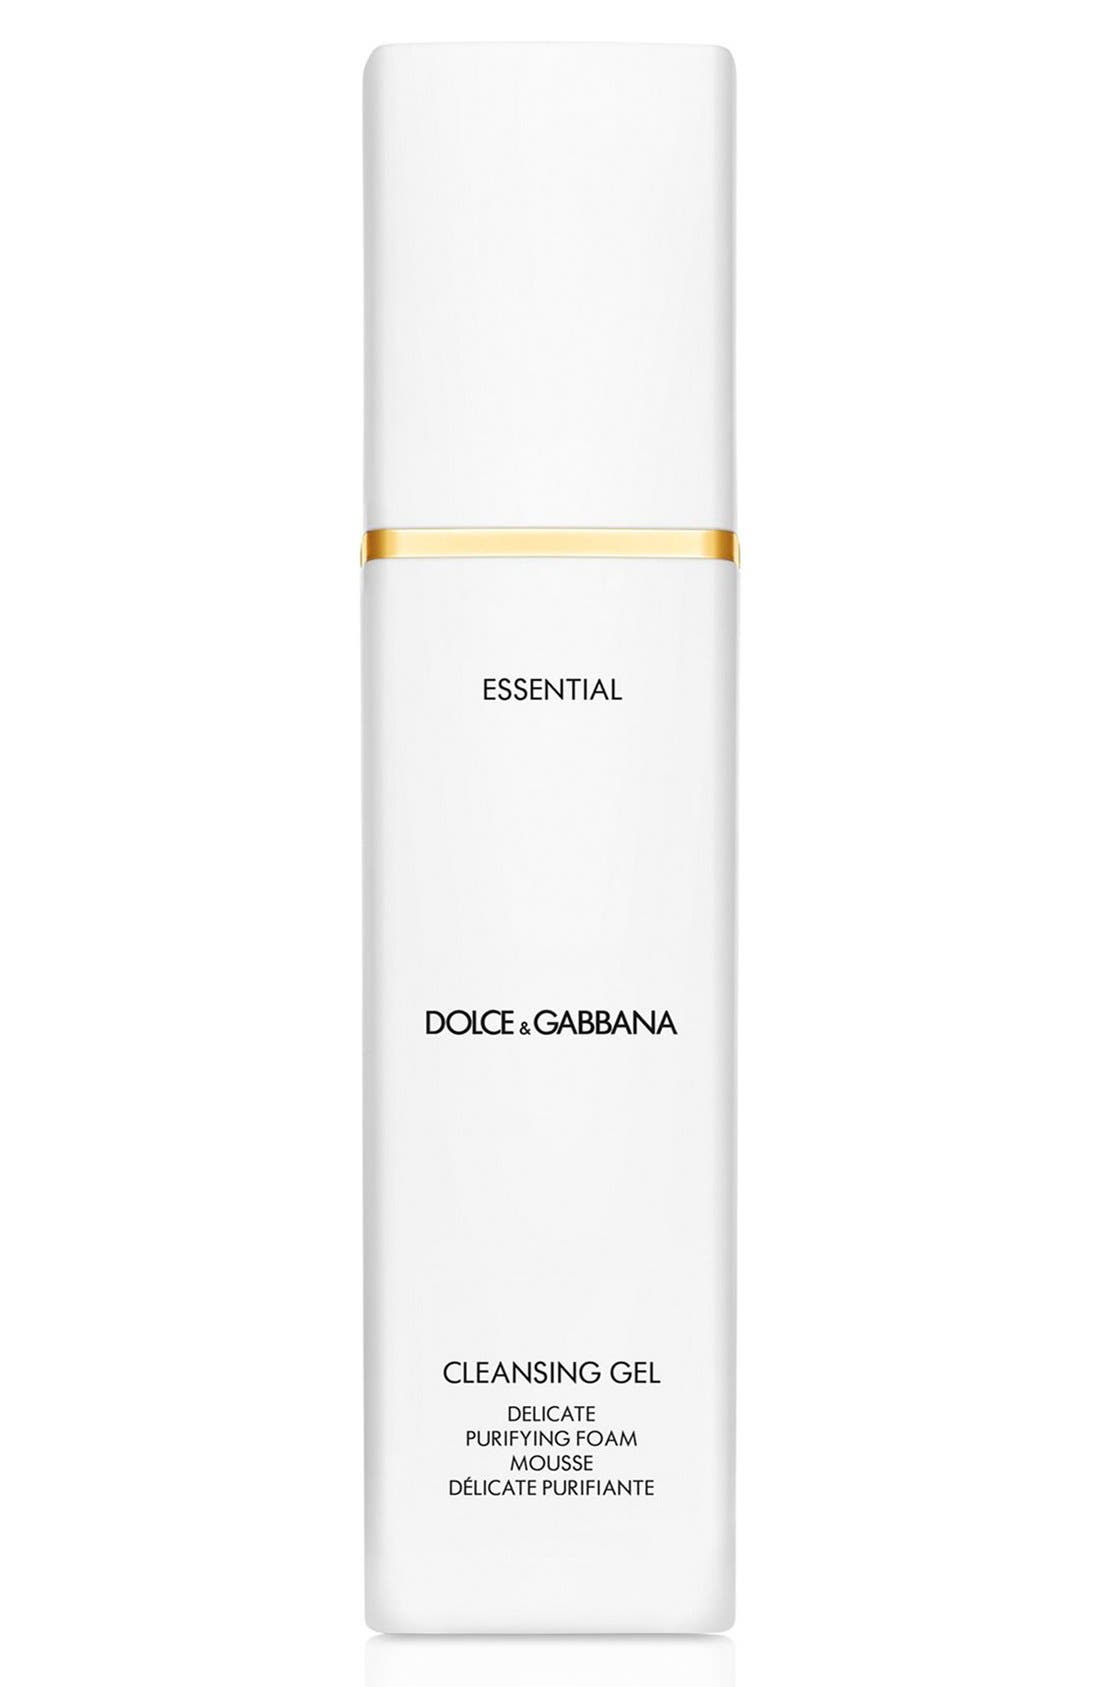 'Essential' Cleansing Gel Delicate Purifying Foam Mousse,                             Main thumbnail 1, color,                             000